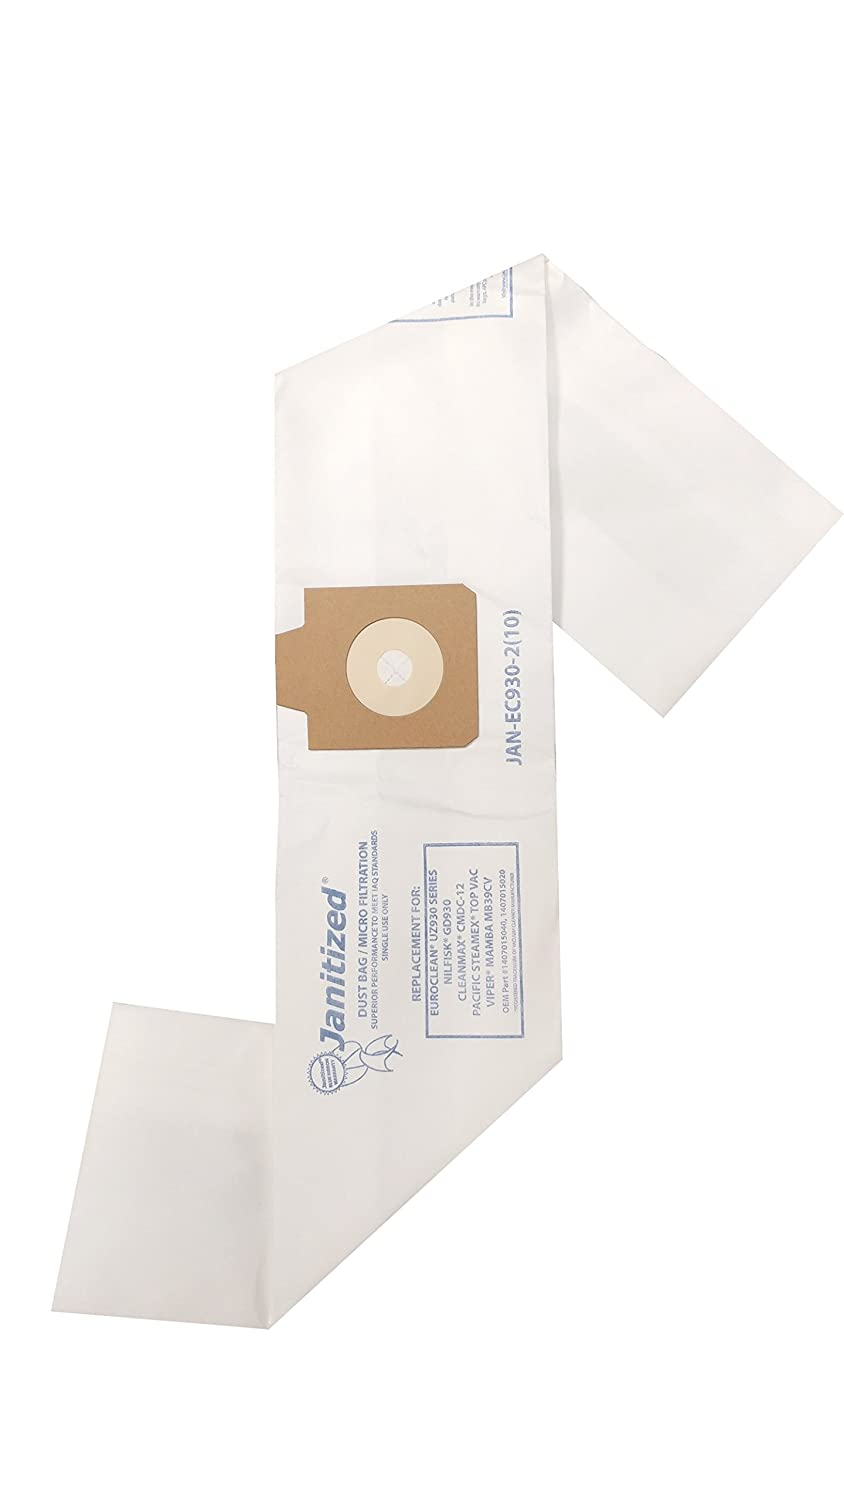 Janitized JAN-EC930-2(10) Premium Replacement Commercial Vacuum Bag, Euroclean UZ930, Viper MB39CV, Nilfisk GD930, Pullman Holt 390ASB, ...